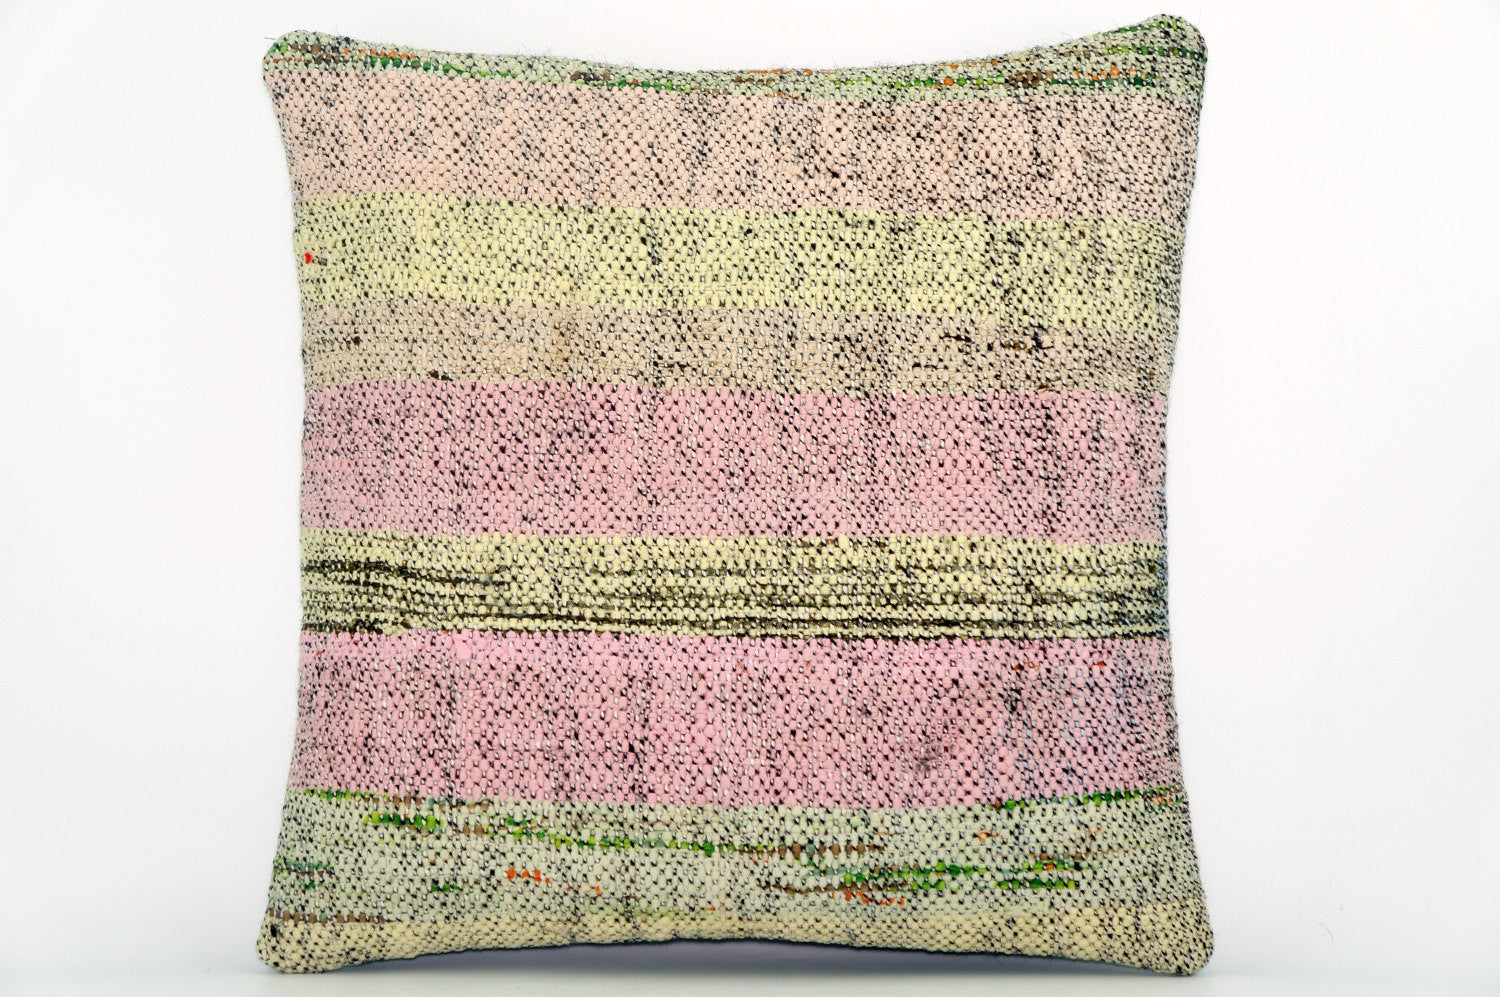 CLEARANCE Handwoven hemp pillow green pink yellow , Decorative Kilim pillow cover 1573_A